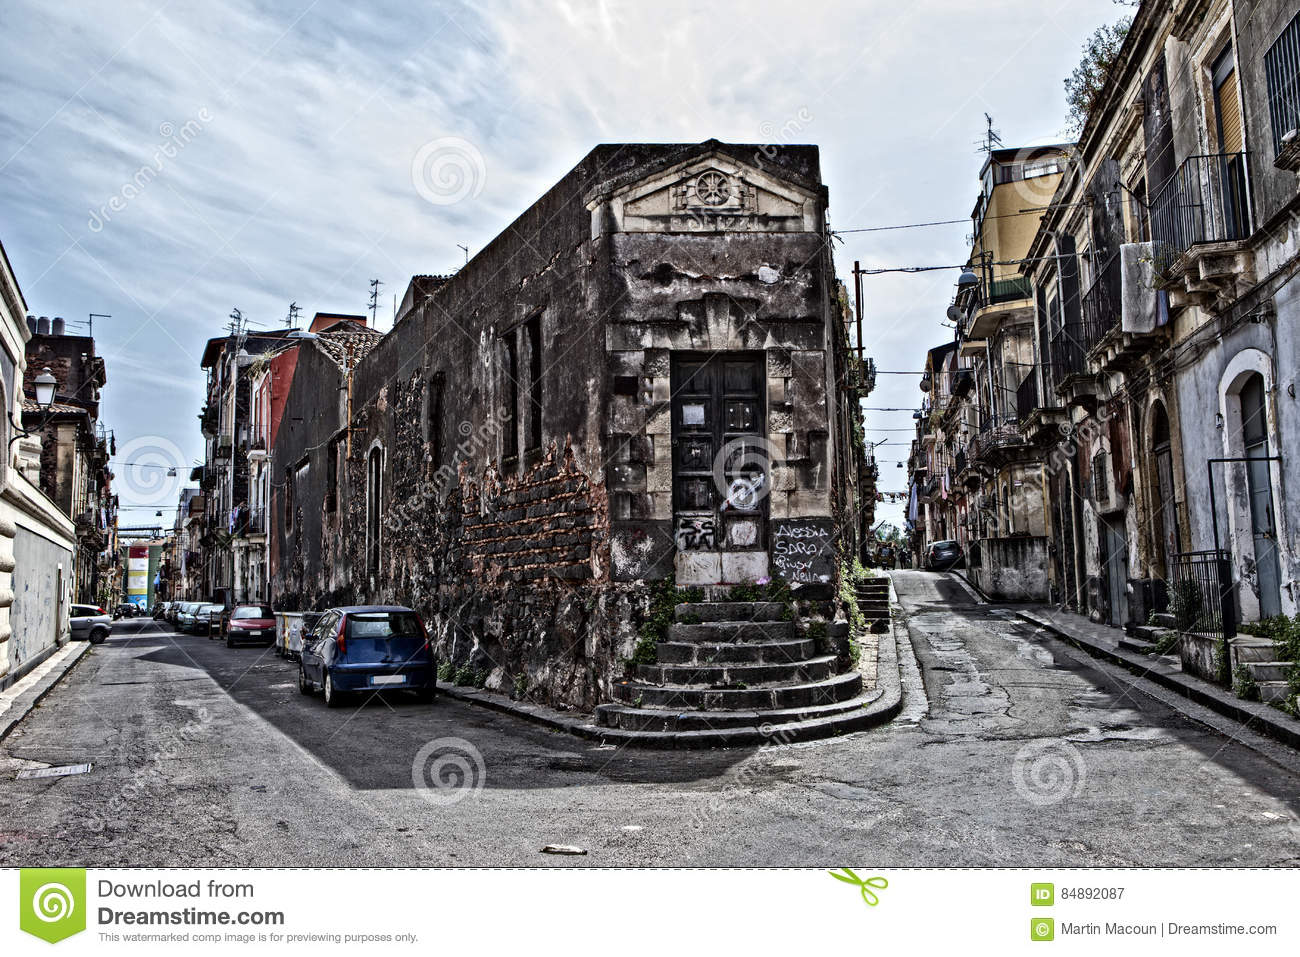 ghetto in catania stock image image of europe place 84892087